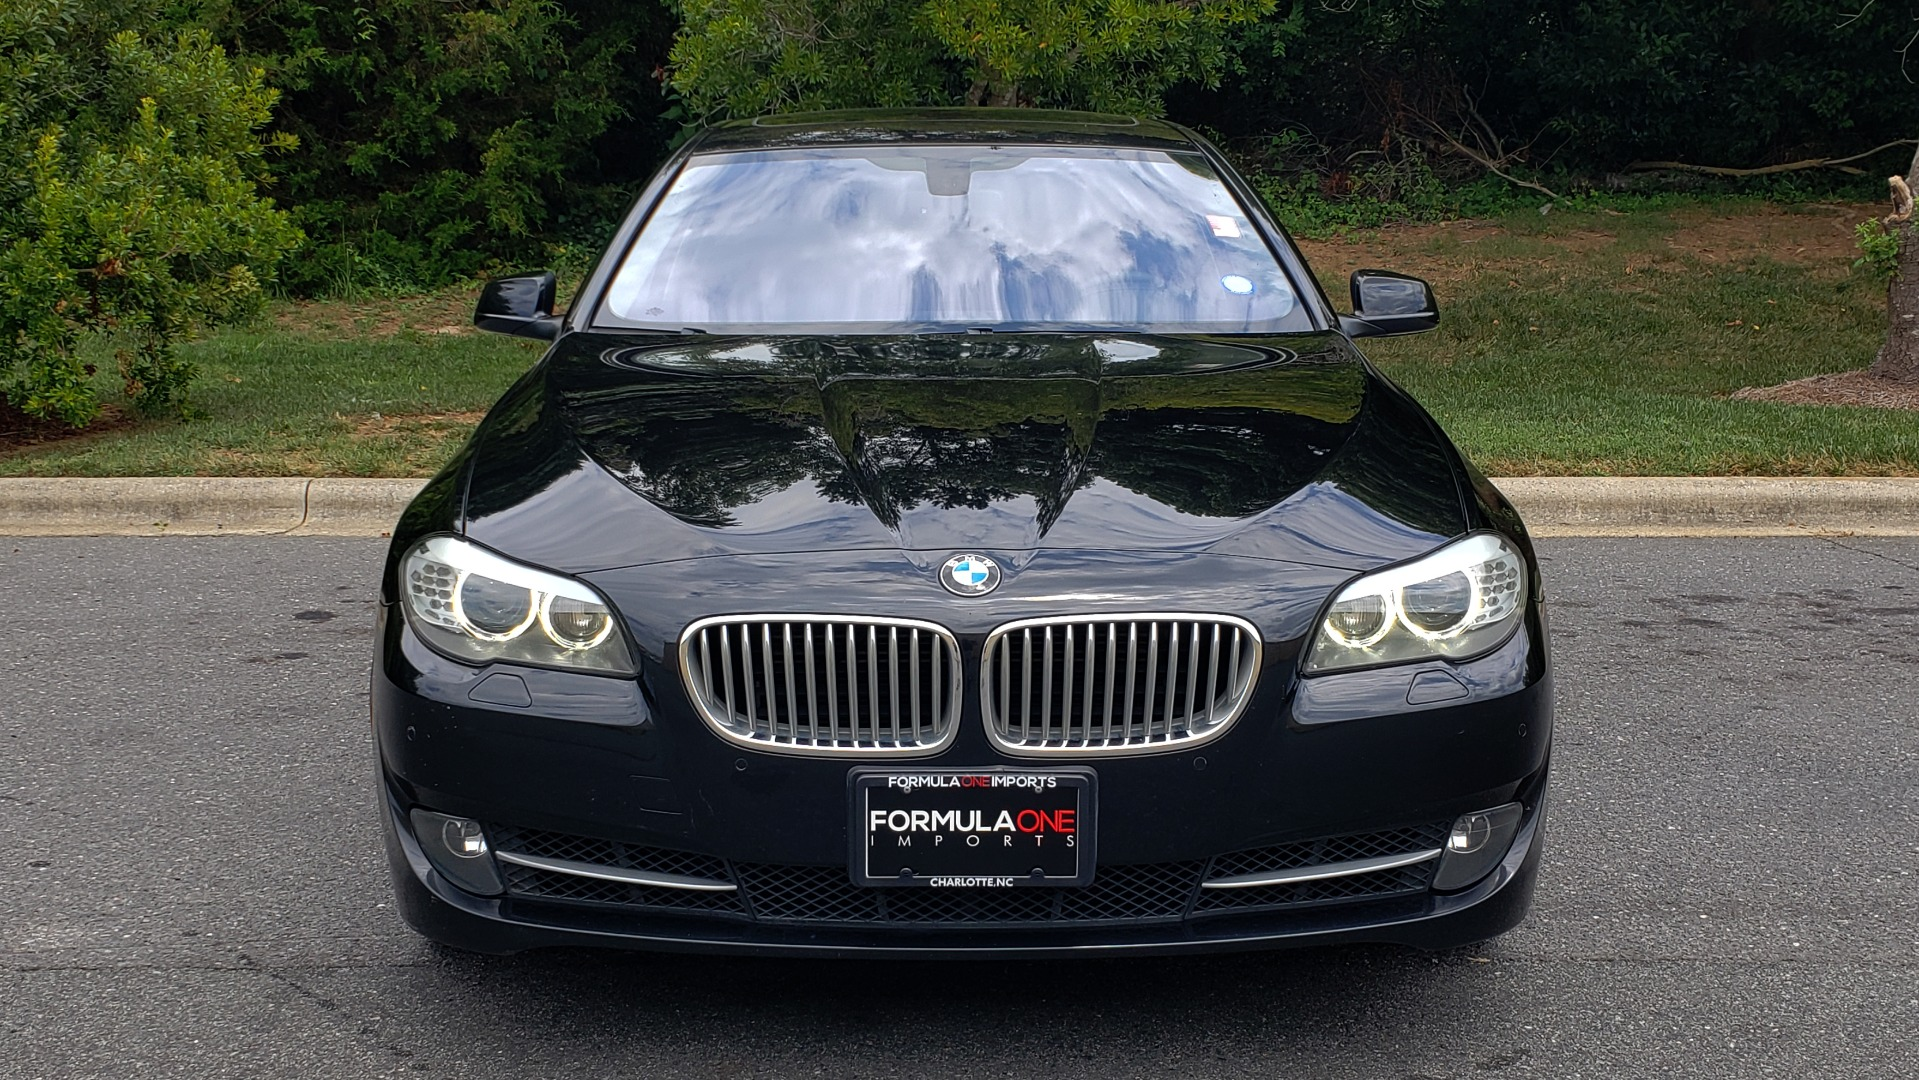 Used 2013 BMW 5 SERIES 550I XDRIVE LUX PKG / EXEC / COLD WTHR / NAV / SUNROOF / REARVIEW for sale Sold at Formula Imports in Charlotte NC 28227 16